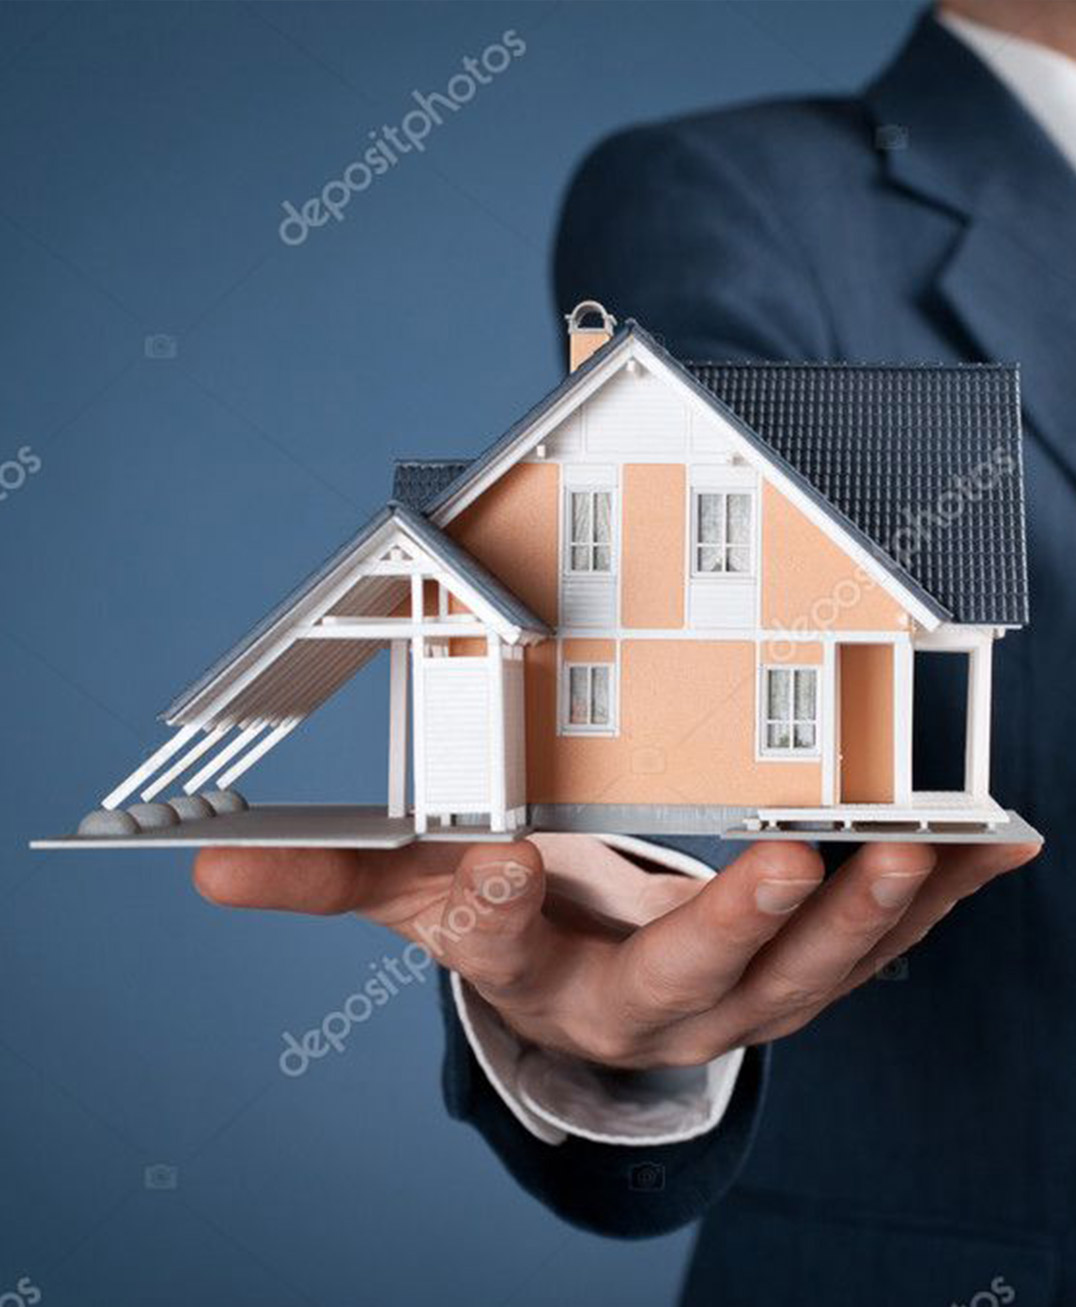 Gray Appraisals - Agent holding model of house